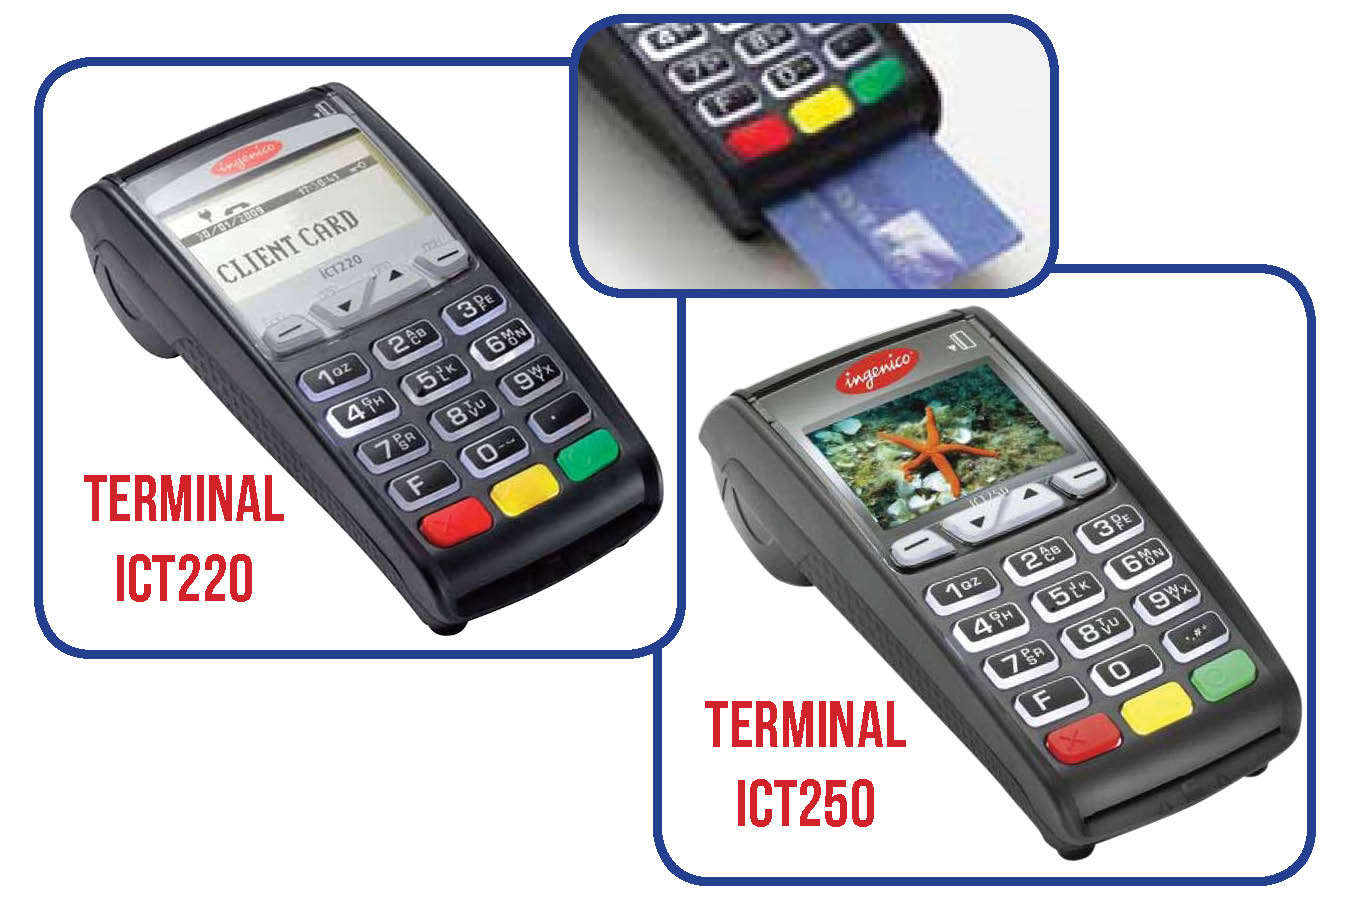 Merchant Program Terminal models